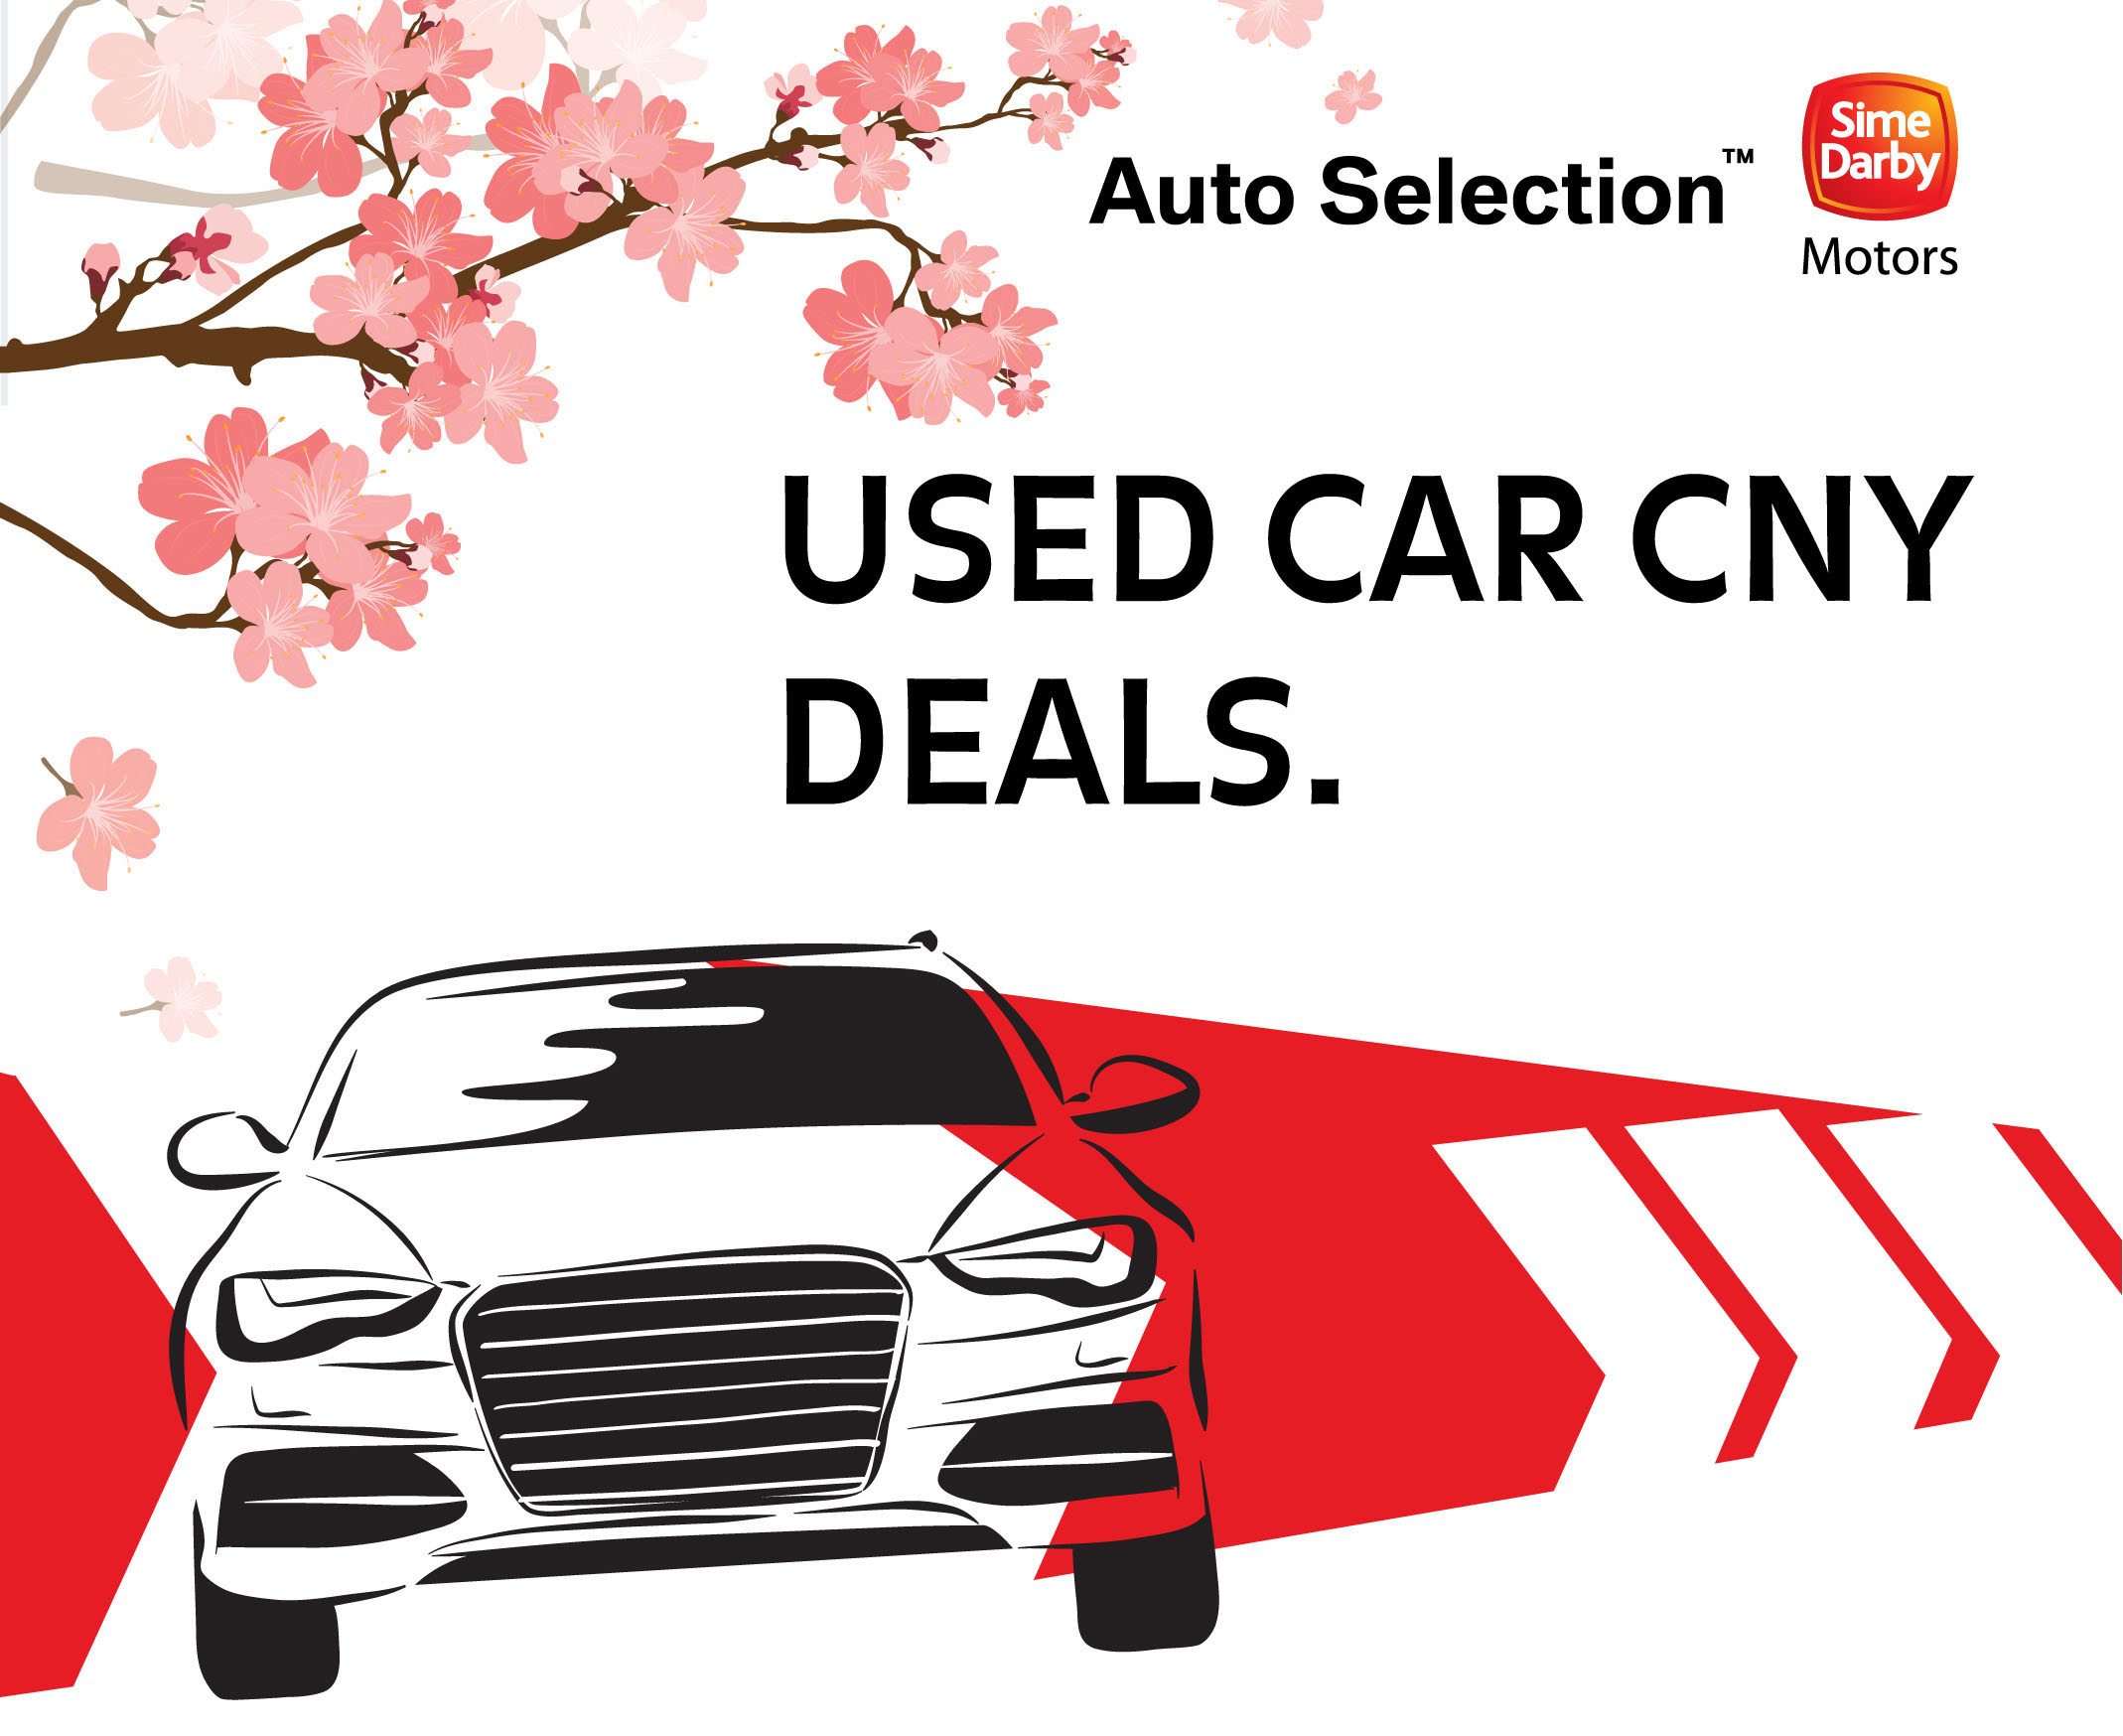 ad auto selection used car cny sales event used cars and bikes at unbeatable prices this weekend. Black Bedroom Furniture Sets. Home Design Ideas